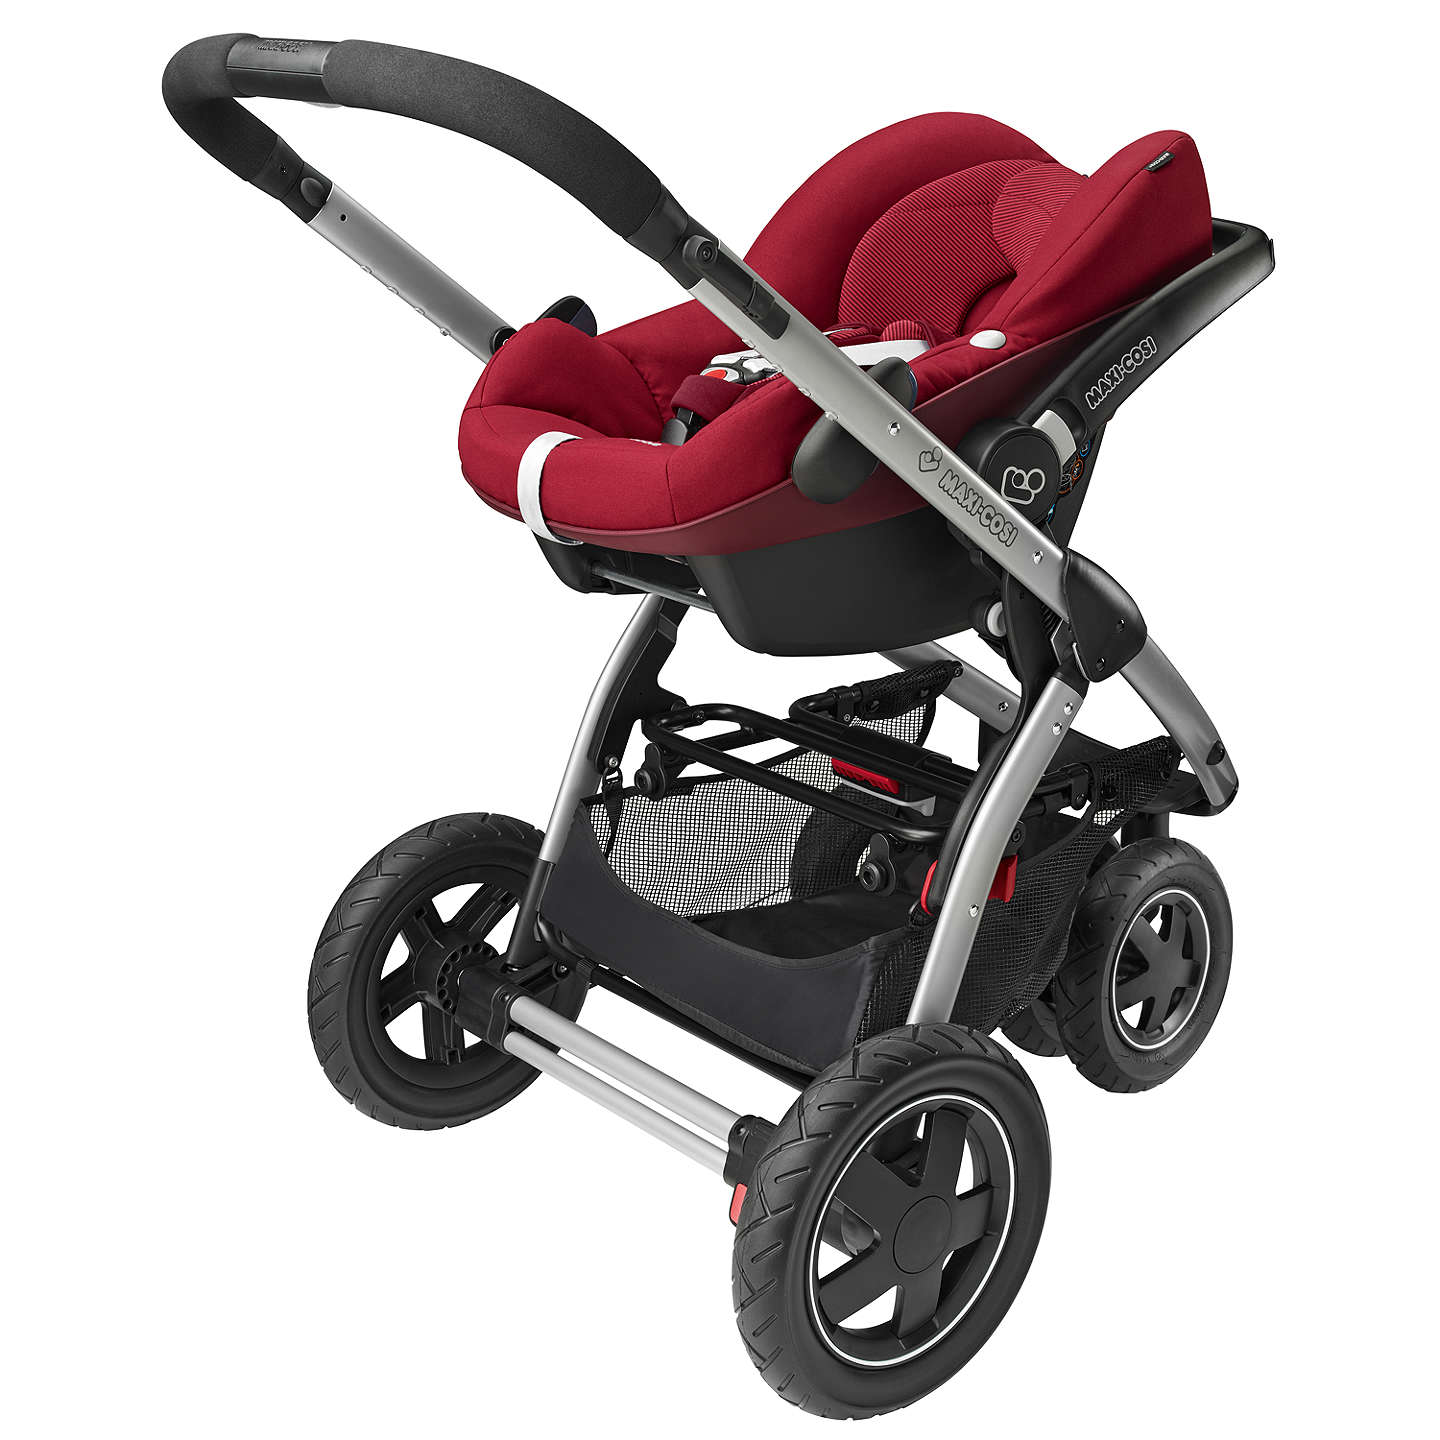 maxi cosi pebble group 0 baby car seat robin red at john lewis. Black Bedroom Furniture Sets. Home Design Ideas